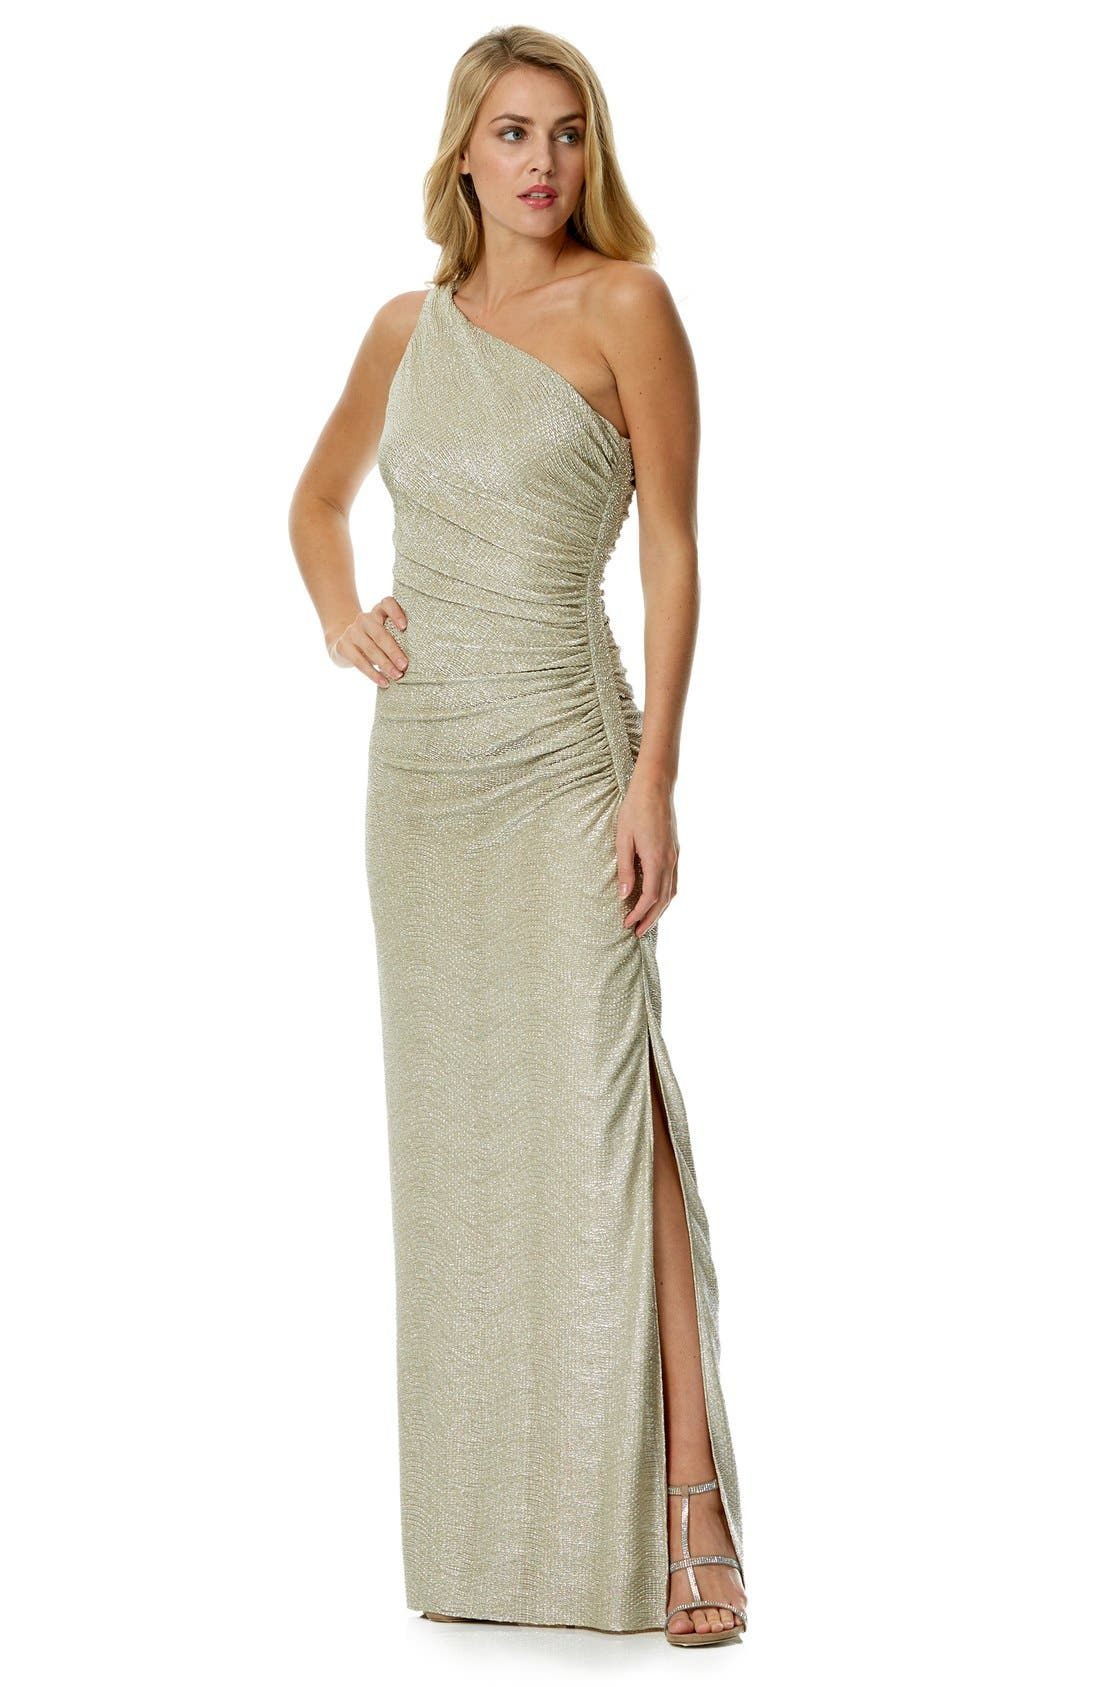 Alternate Image 1 Selected - Laundry by Shelli Segal Foiled One-Shoulder Gown